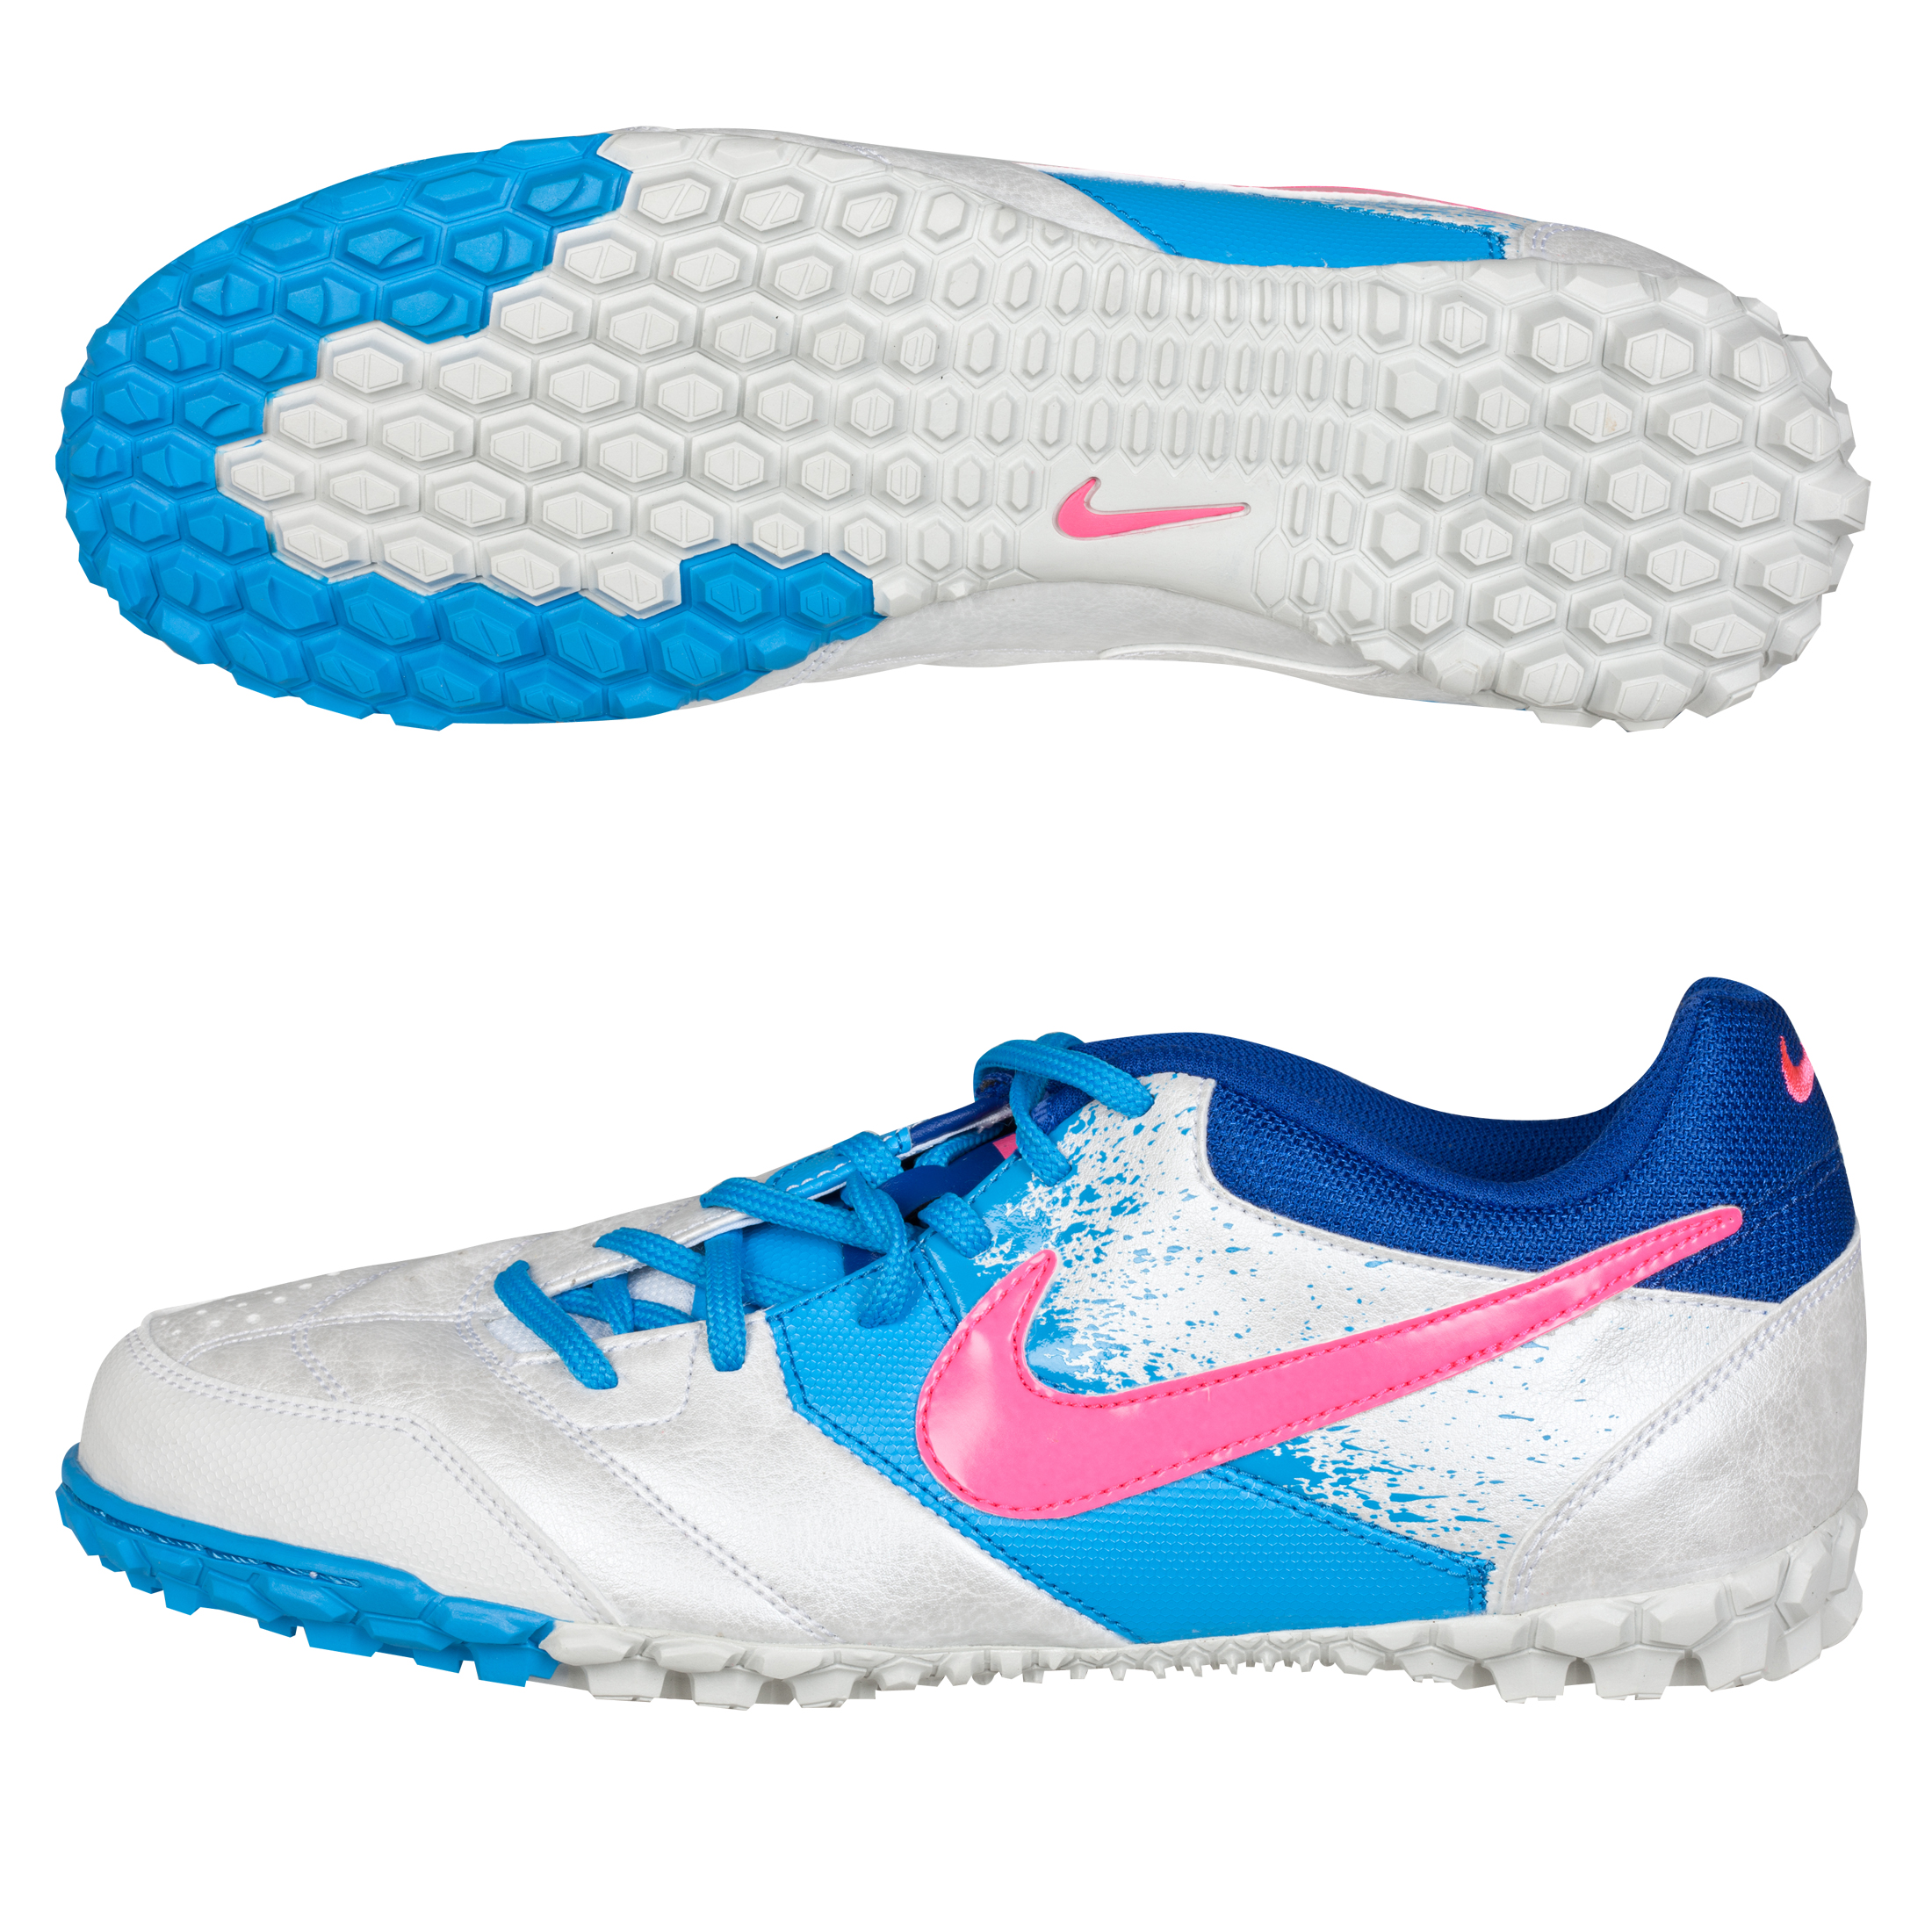 Nike5 Bomba Trainers - White/Pink Flash/Blue Glow